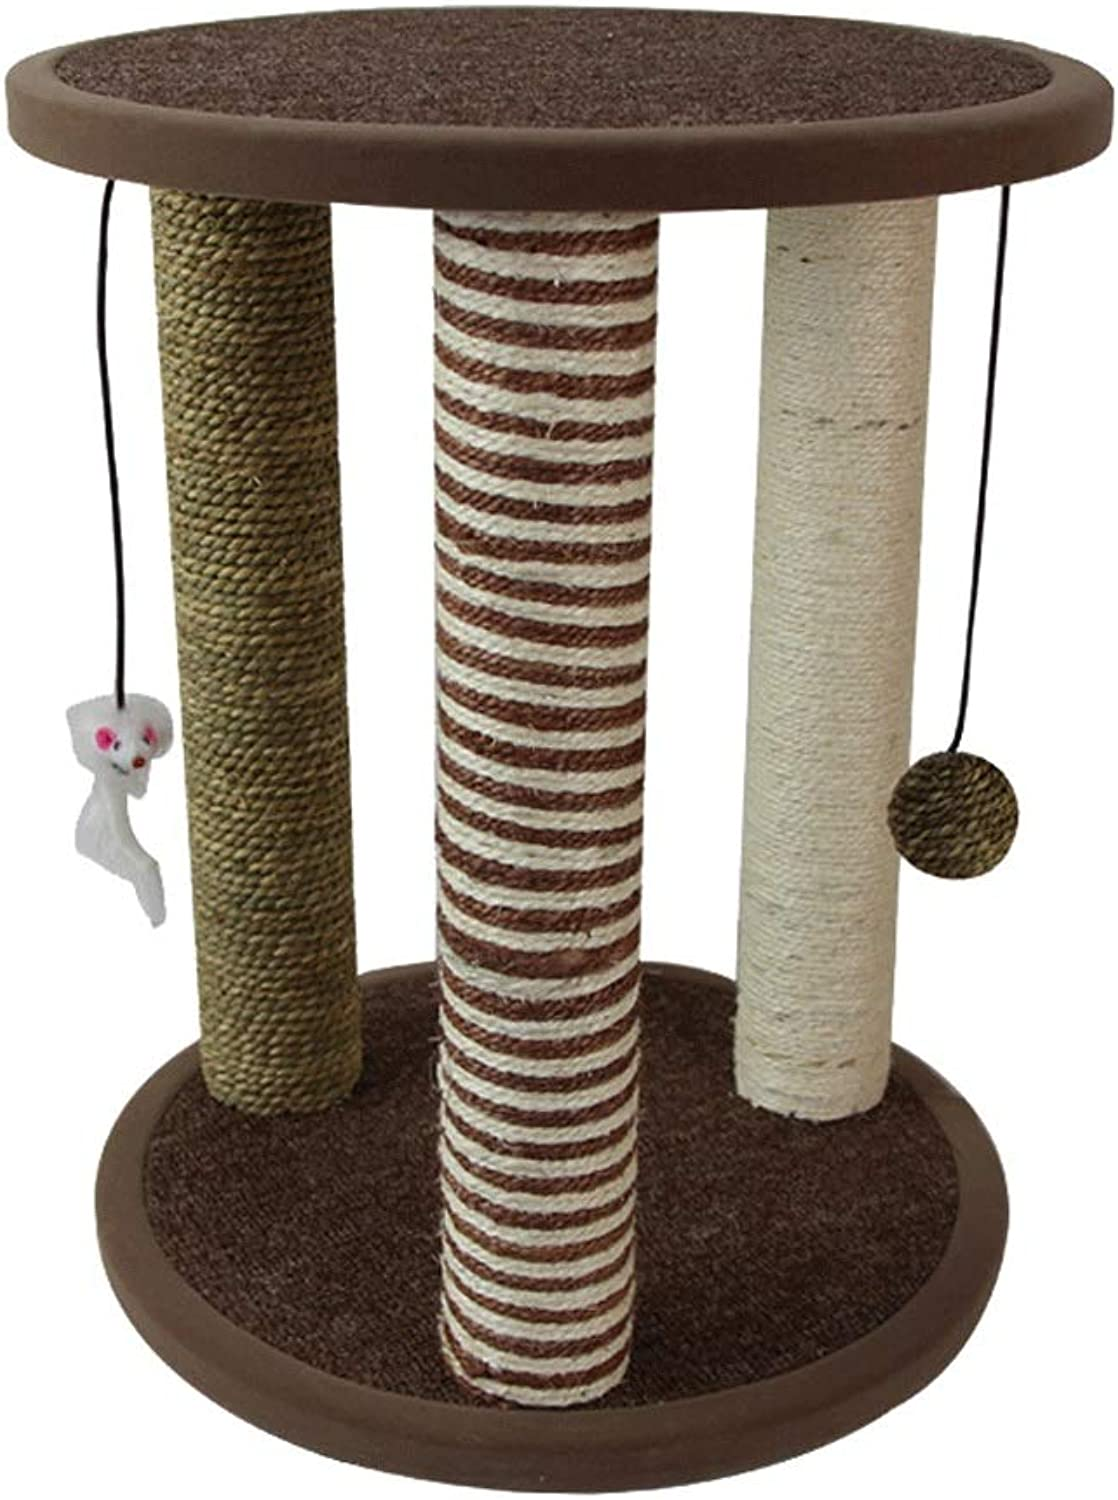 HTMAL Sisal Cat Climbing Frame Cat Scratch Board Hammock Cat Litter Claw Cat Jumping Platform Cat Tree Cat Toy Supplies Can Be Used As A Stool Or In A Bedside Table.